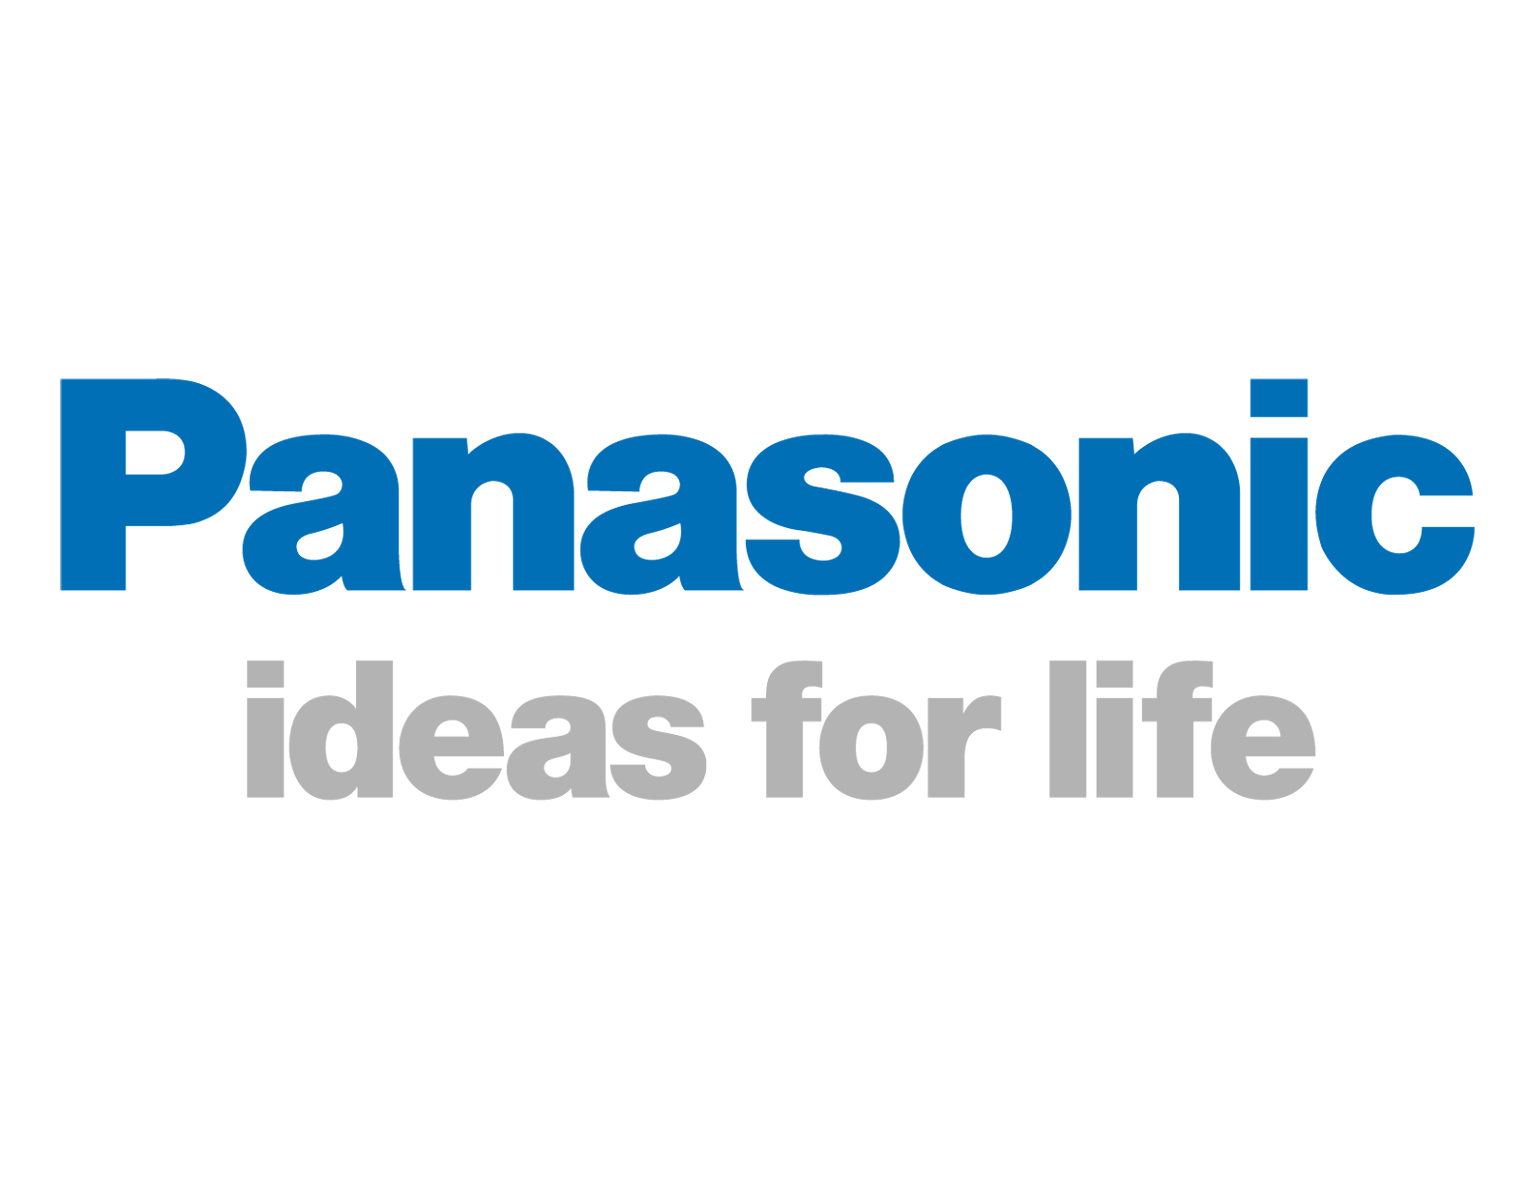 panasonic-logo